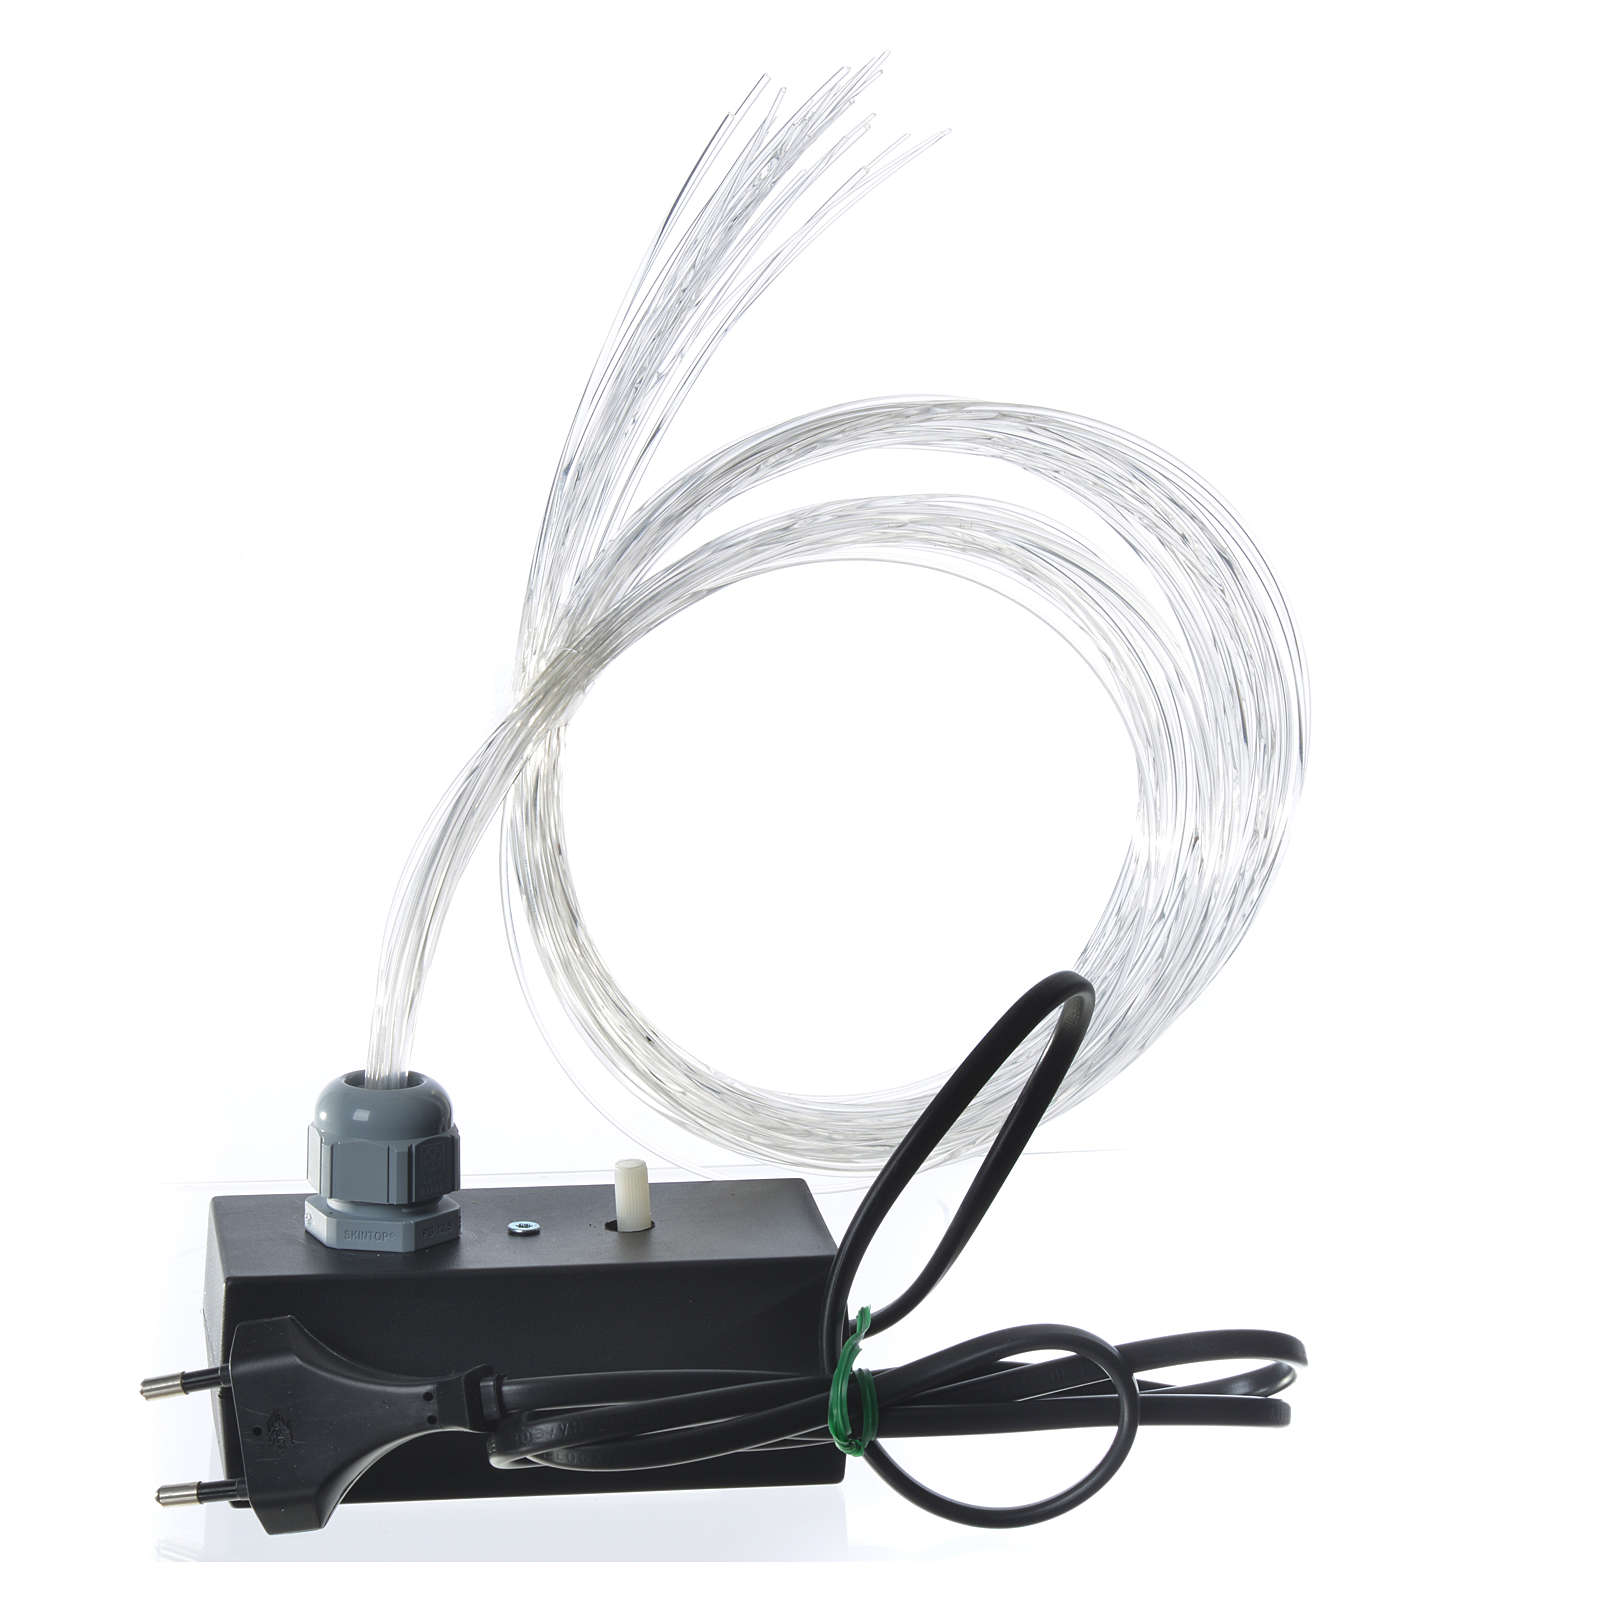 Optical fibre 1 m for nativity scene, led lightning with fade and flickering effects 4